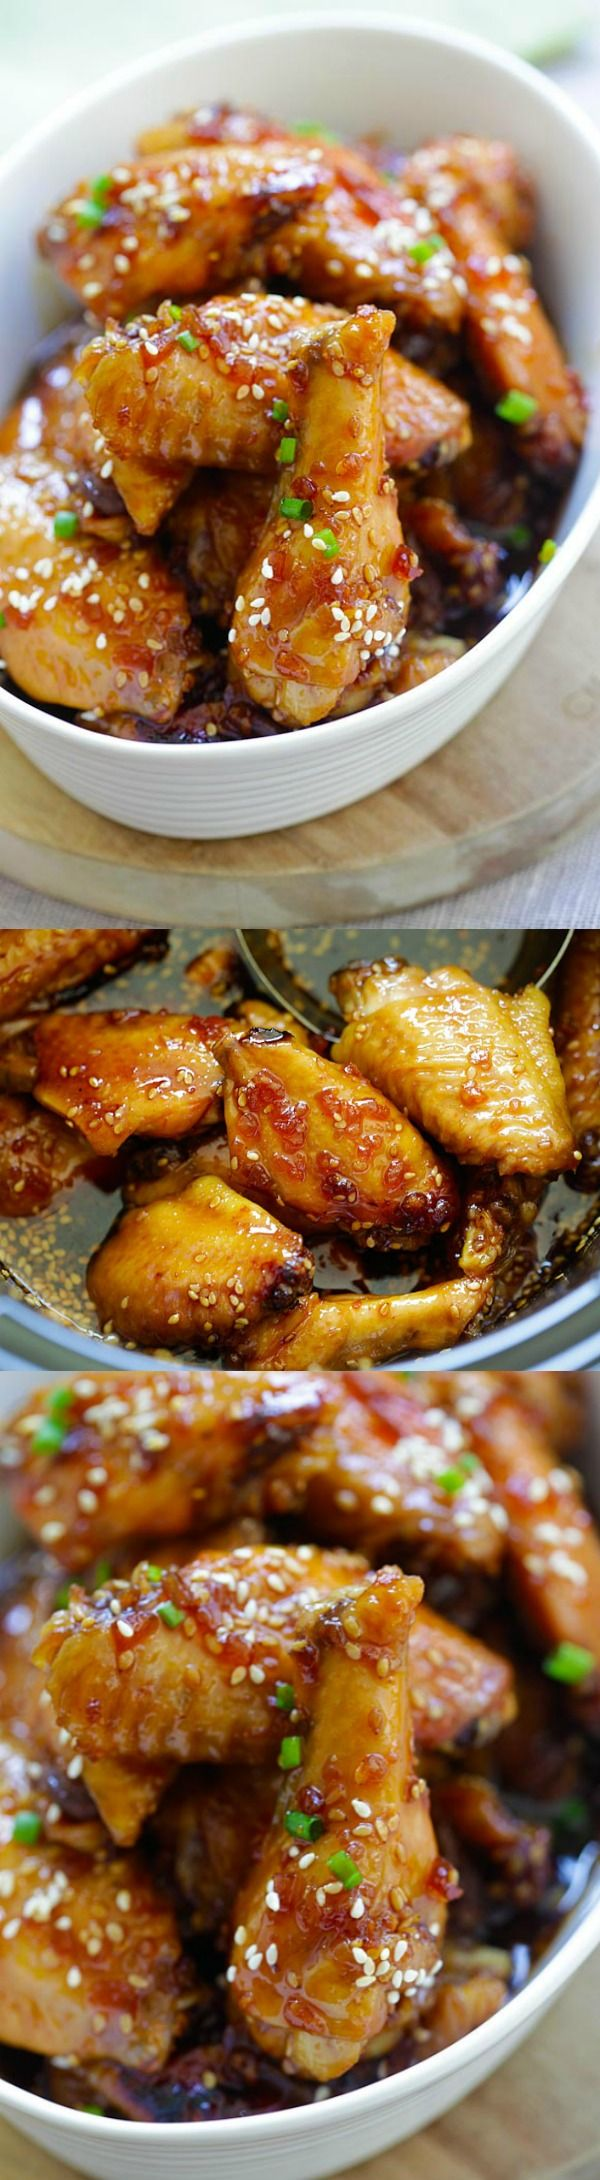 Crock-Pot Wings - sweet, savory and garlicky chicken wings cooked in a slow cooker with island teriyaki sauce. 10 mins prep time, so easy | rasamalaysia.com #ad